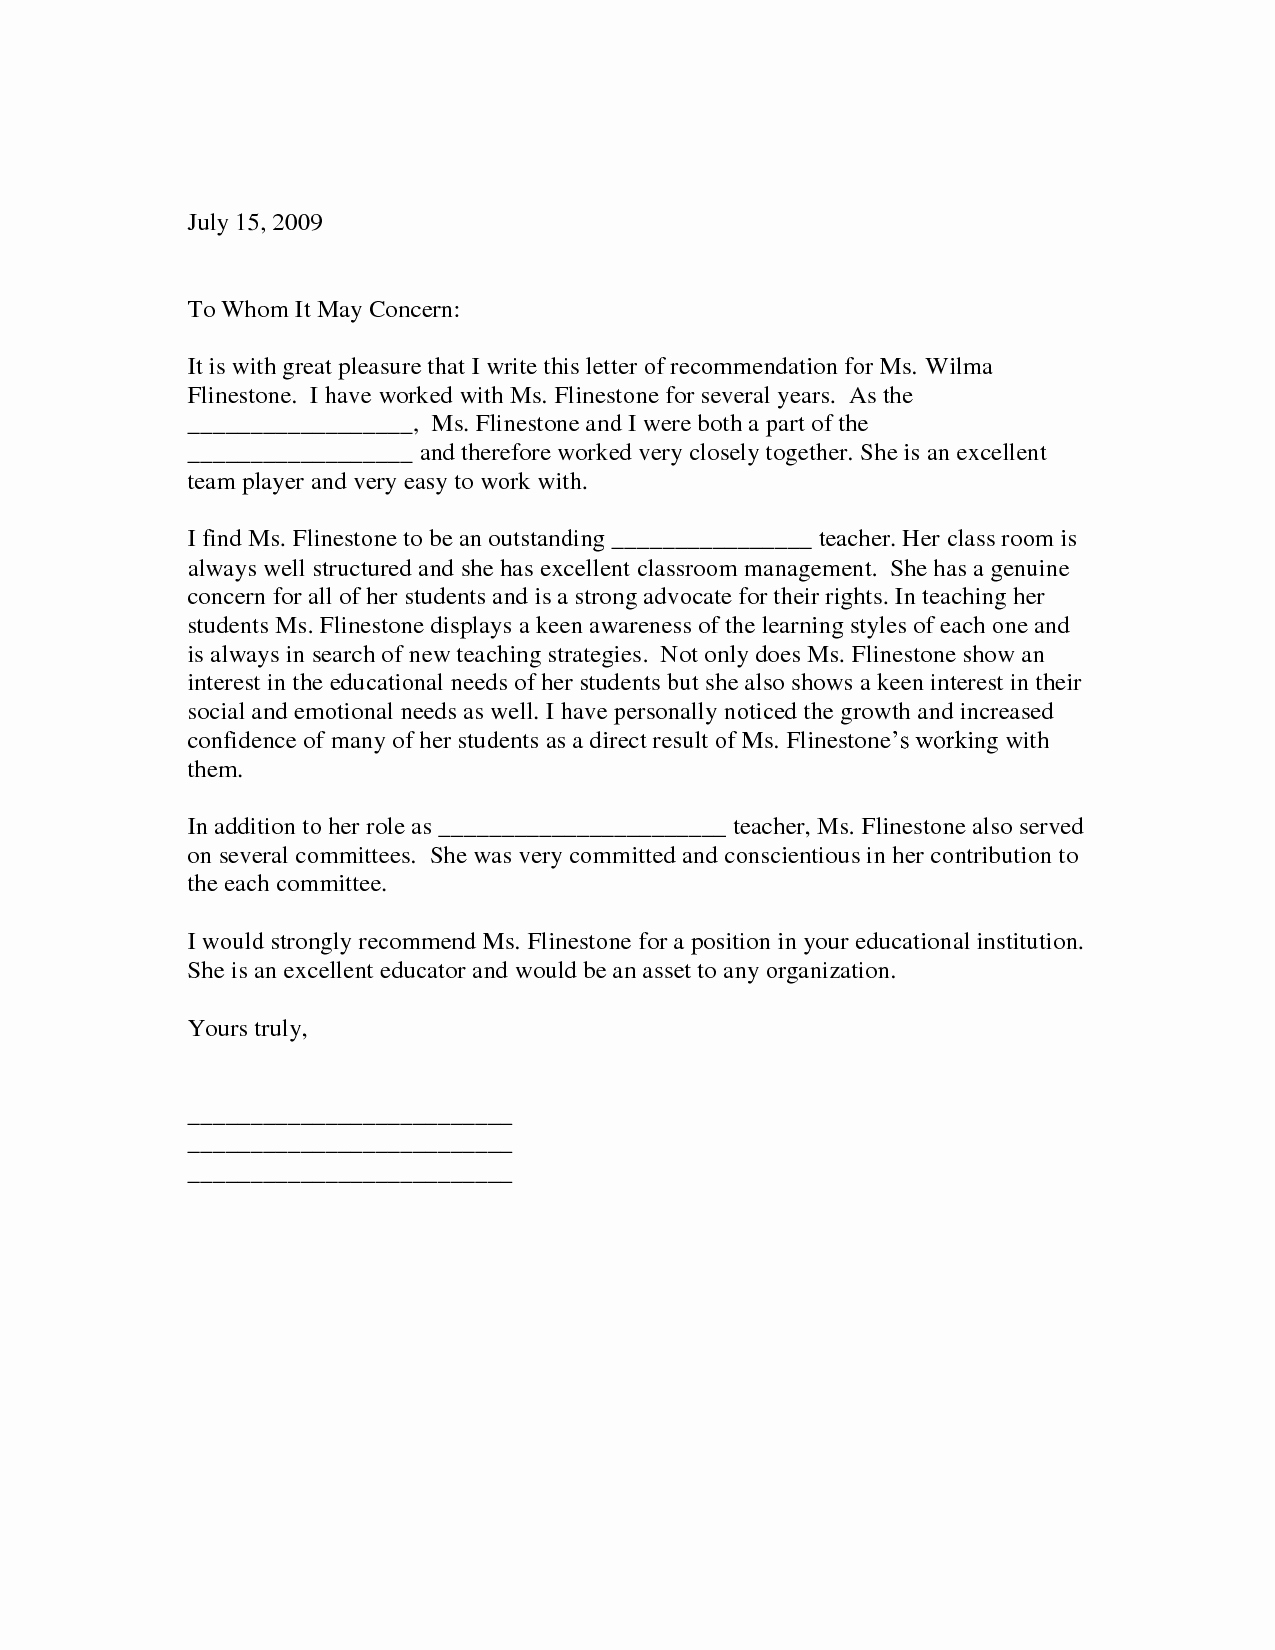 Reference Letter for Teaching Awesome Sample Letter Of Re Mendation for Teacher